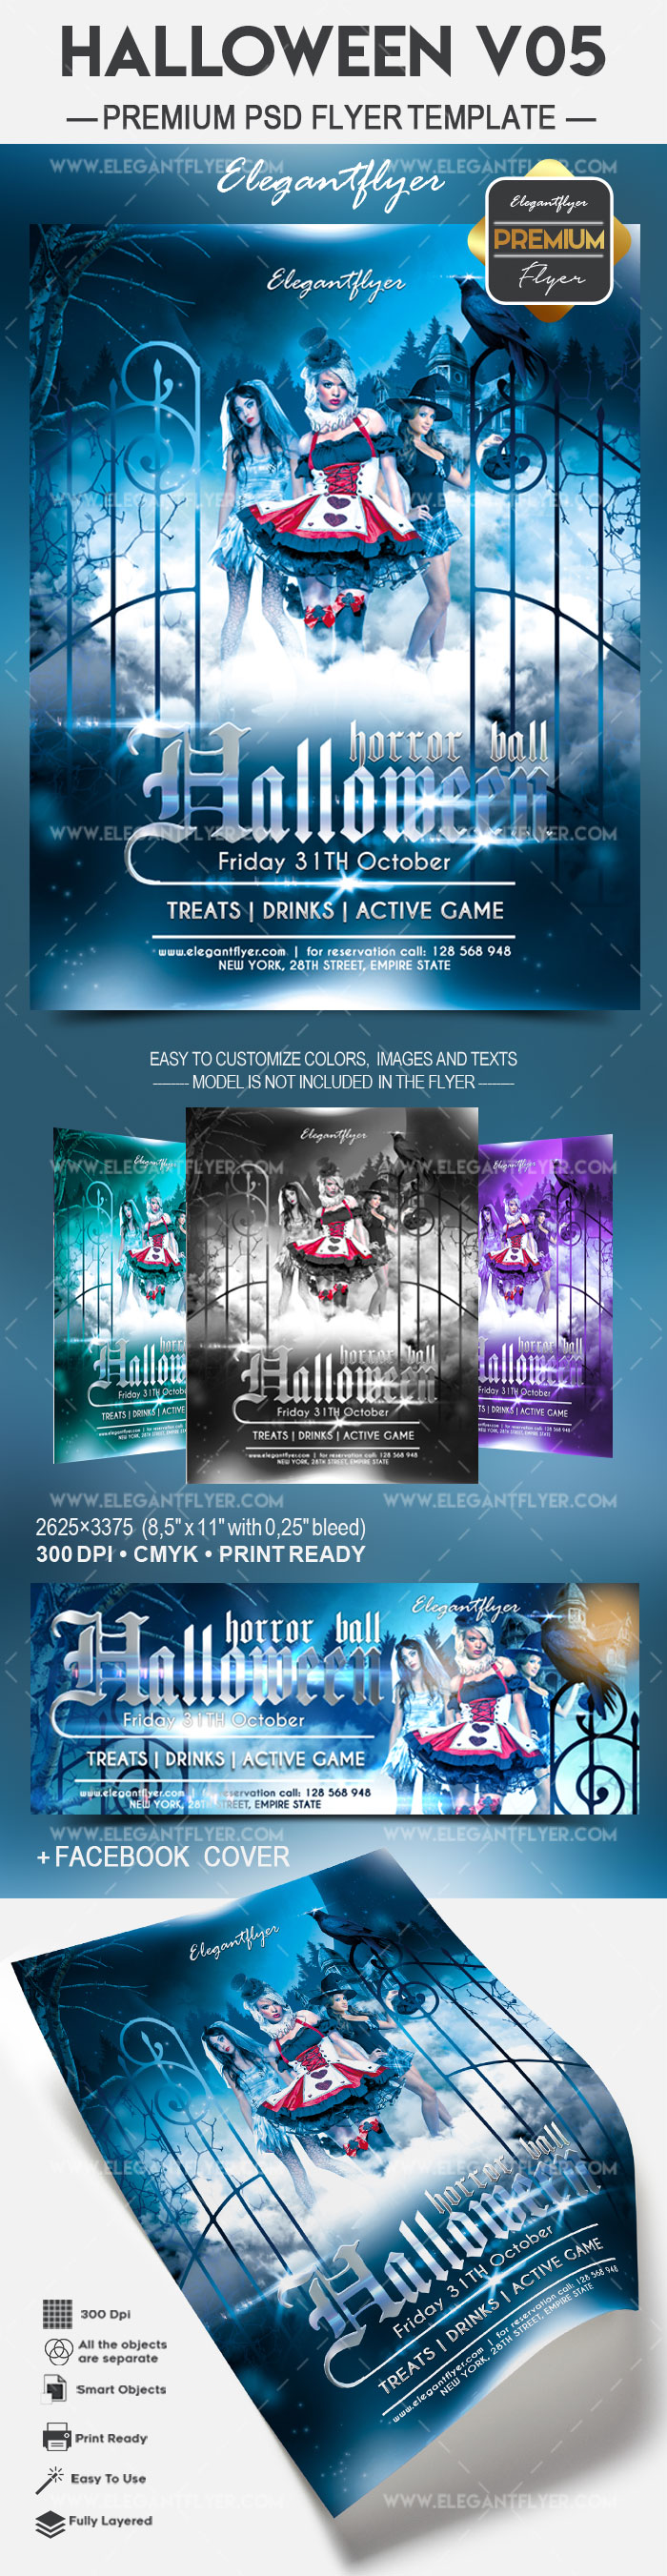 Halloween ball 2017 – Flyer PSD Template + Facebook Cover